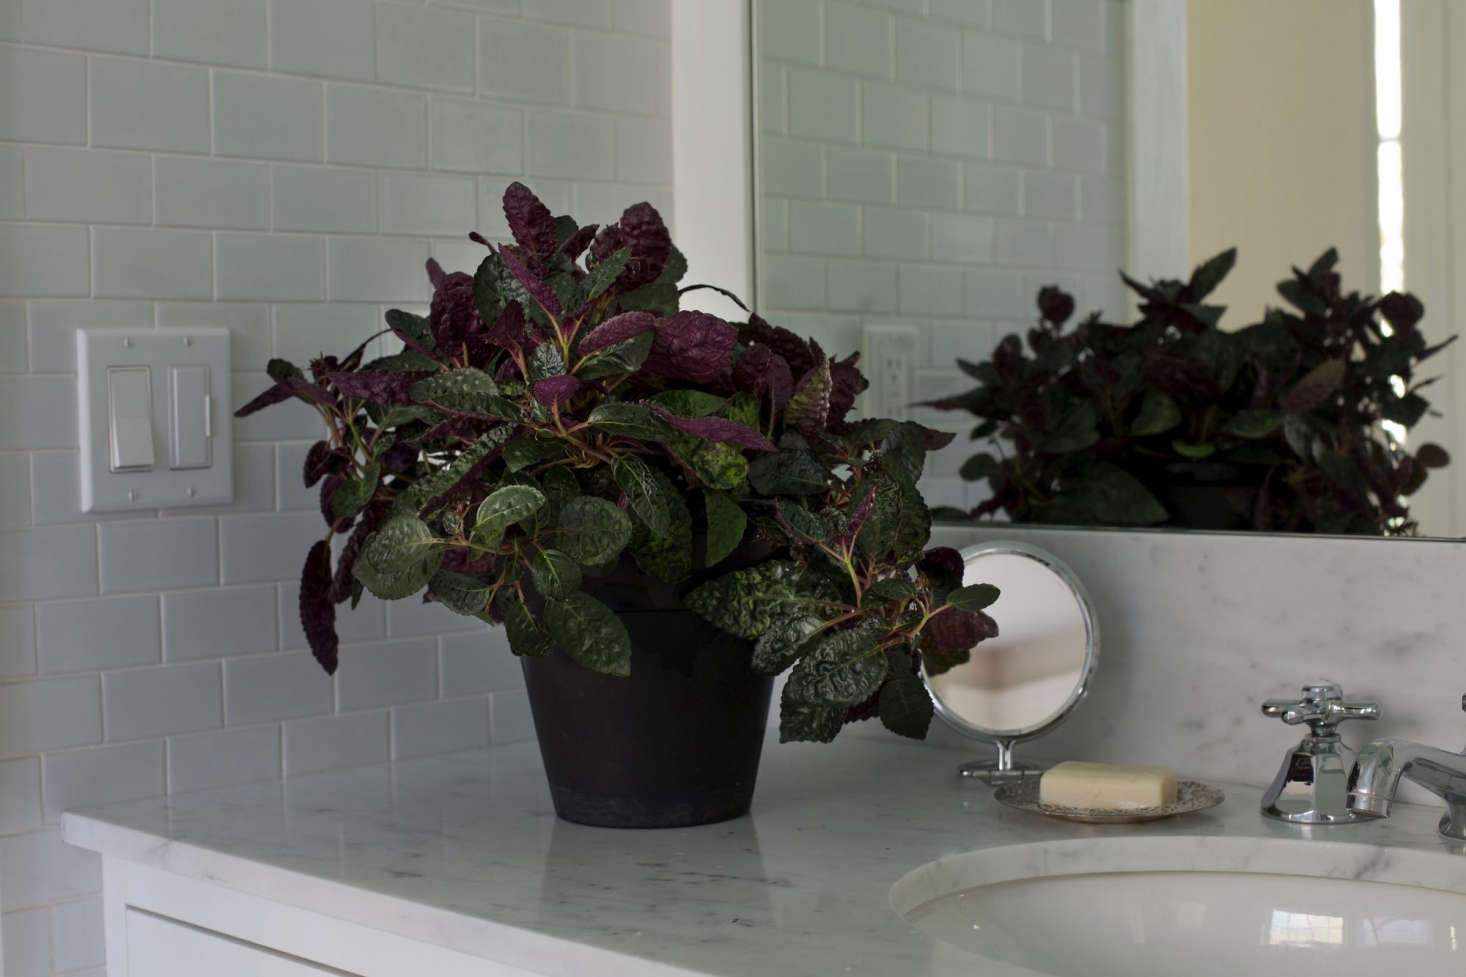 Small House Plants With Purple Leaves on tomato plants with purple leaves, purple house plant fuzzy leaves, house with red flowers, house plants with shiny leaves, house plants with colorful leaves, house plants with small leaves, house plants with bronze leaves, house plants with waxy red blooms, florida plants with red leaves, house plant rubber plant, house plant purple heart, poisonous plants with purple leaves, house plants with long green leaves, perennial plants with purple leaves, house plants with light green leaves, olive tree green leaves, purple foliage plants with leaves, house plants and their names, wandering jew with fuzzy leaves, house plants with dark red leaves,